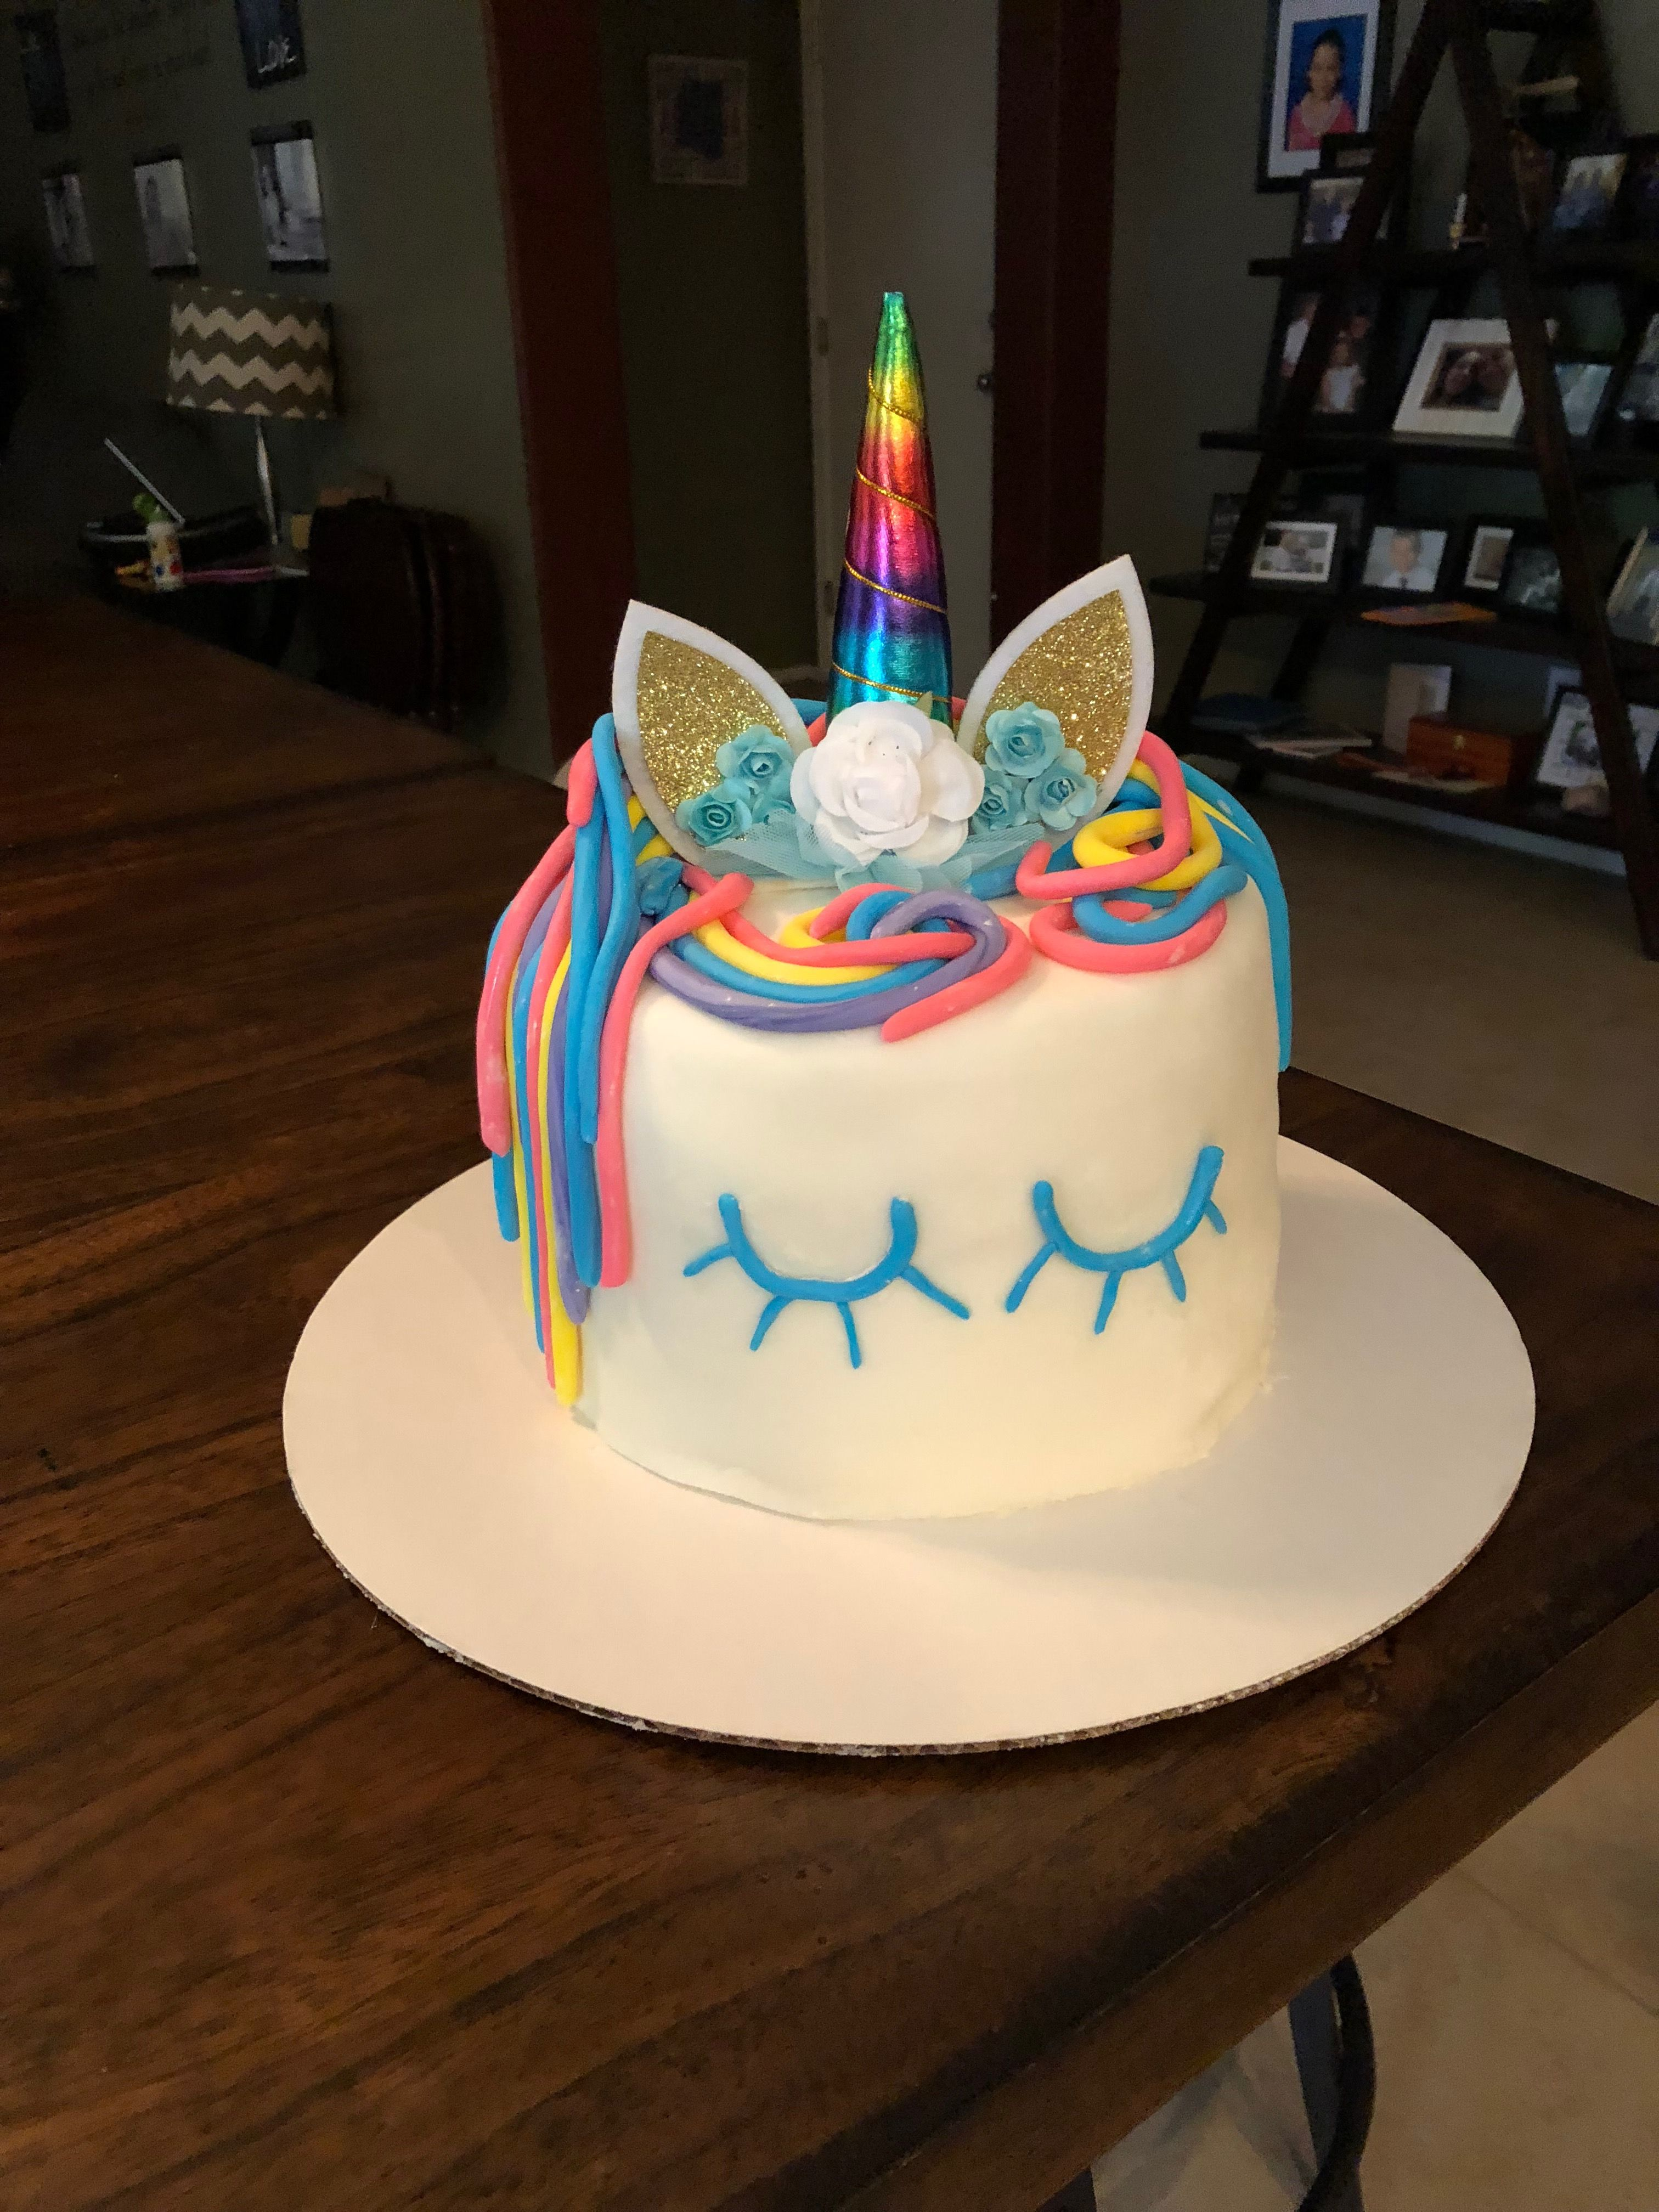 Terrific Kaseys 6Th Birthday Cake A Unicorn Cake With Images 6Th Funny Birthday Cards Online Barepcheapnameinfo